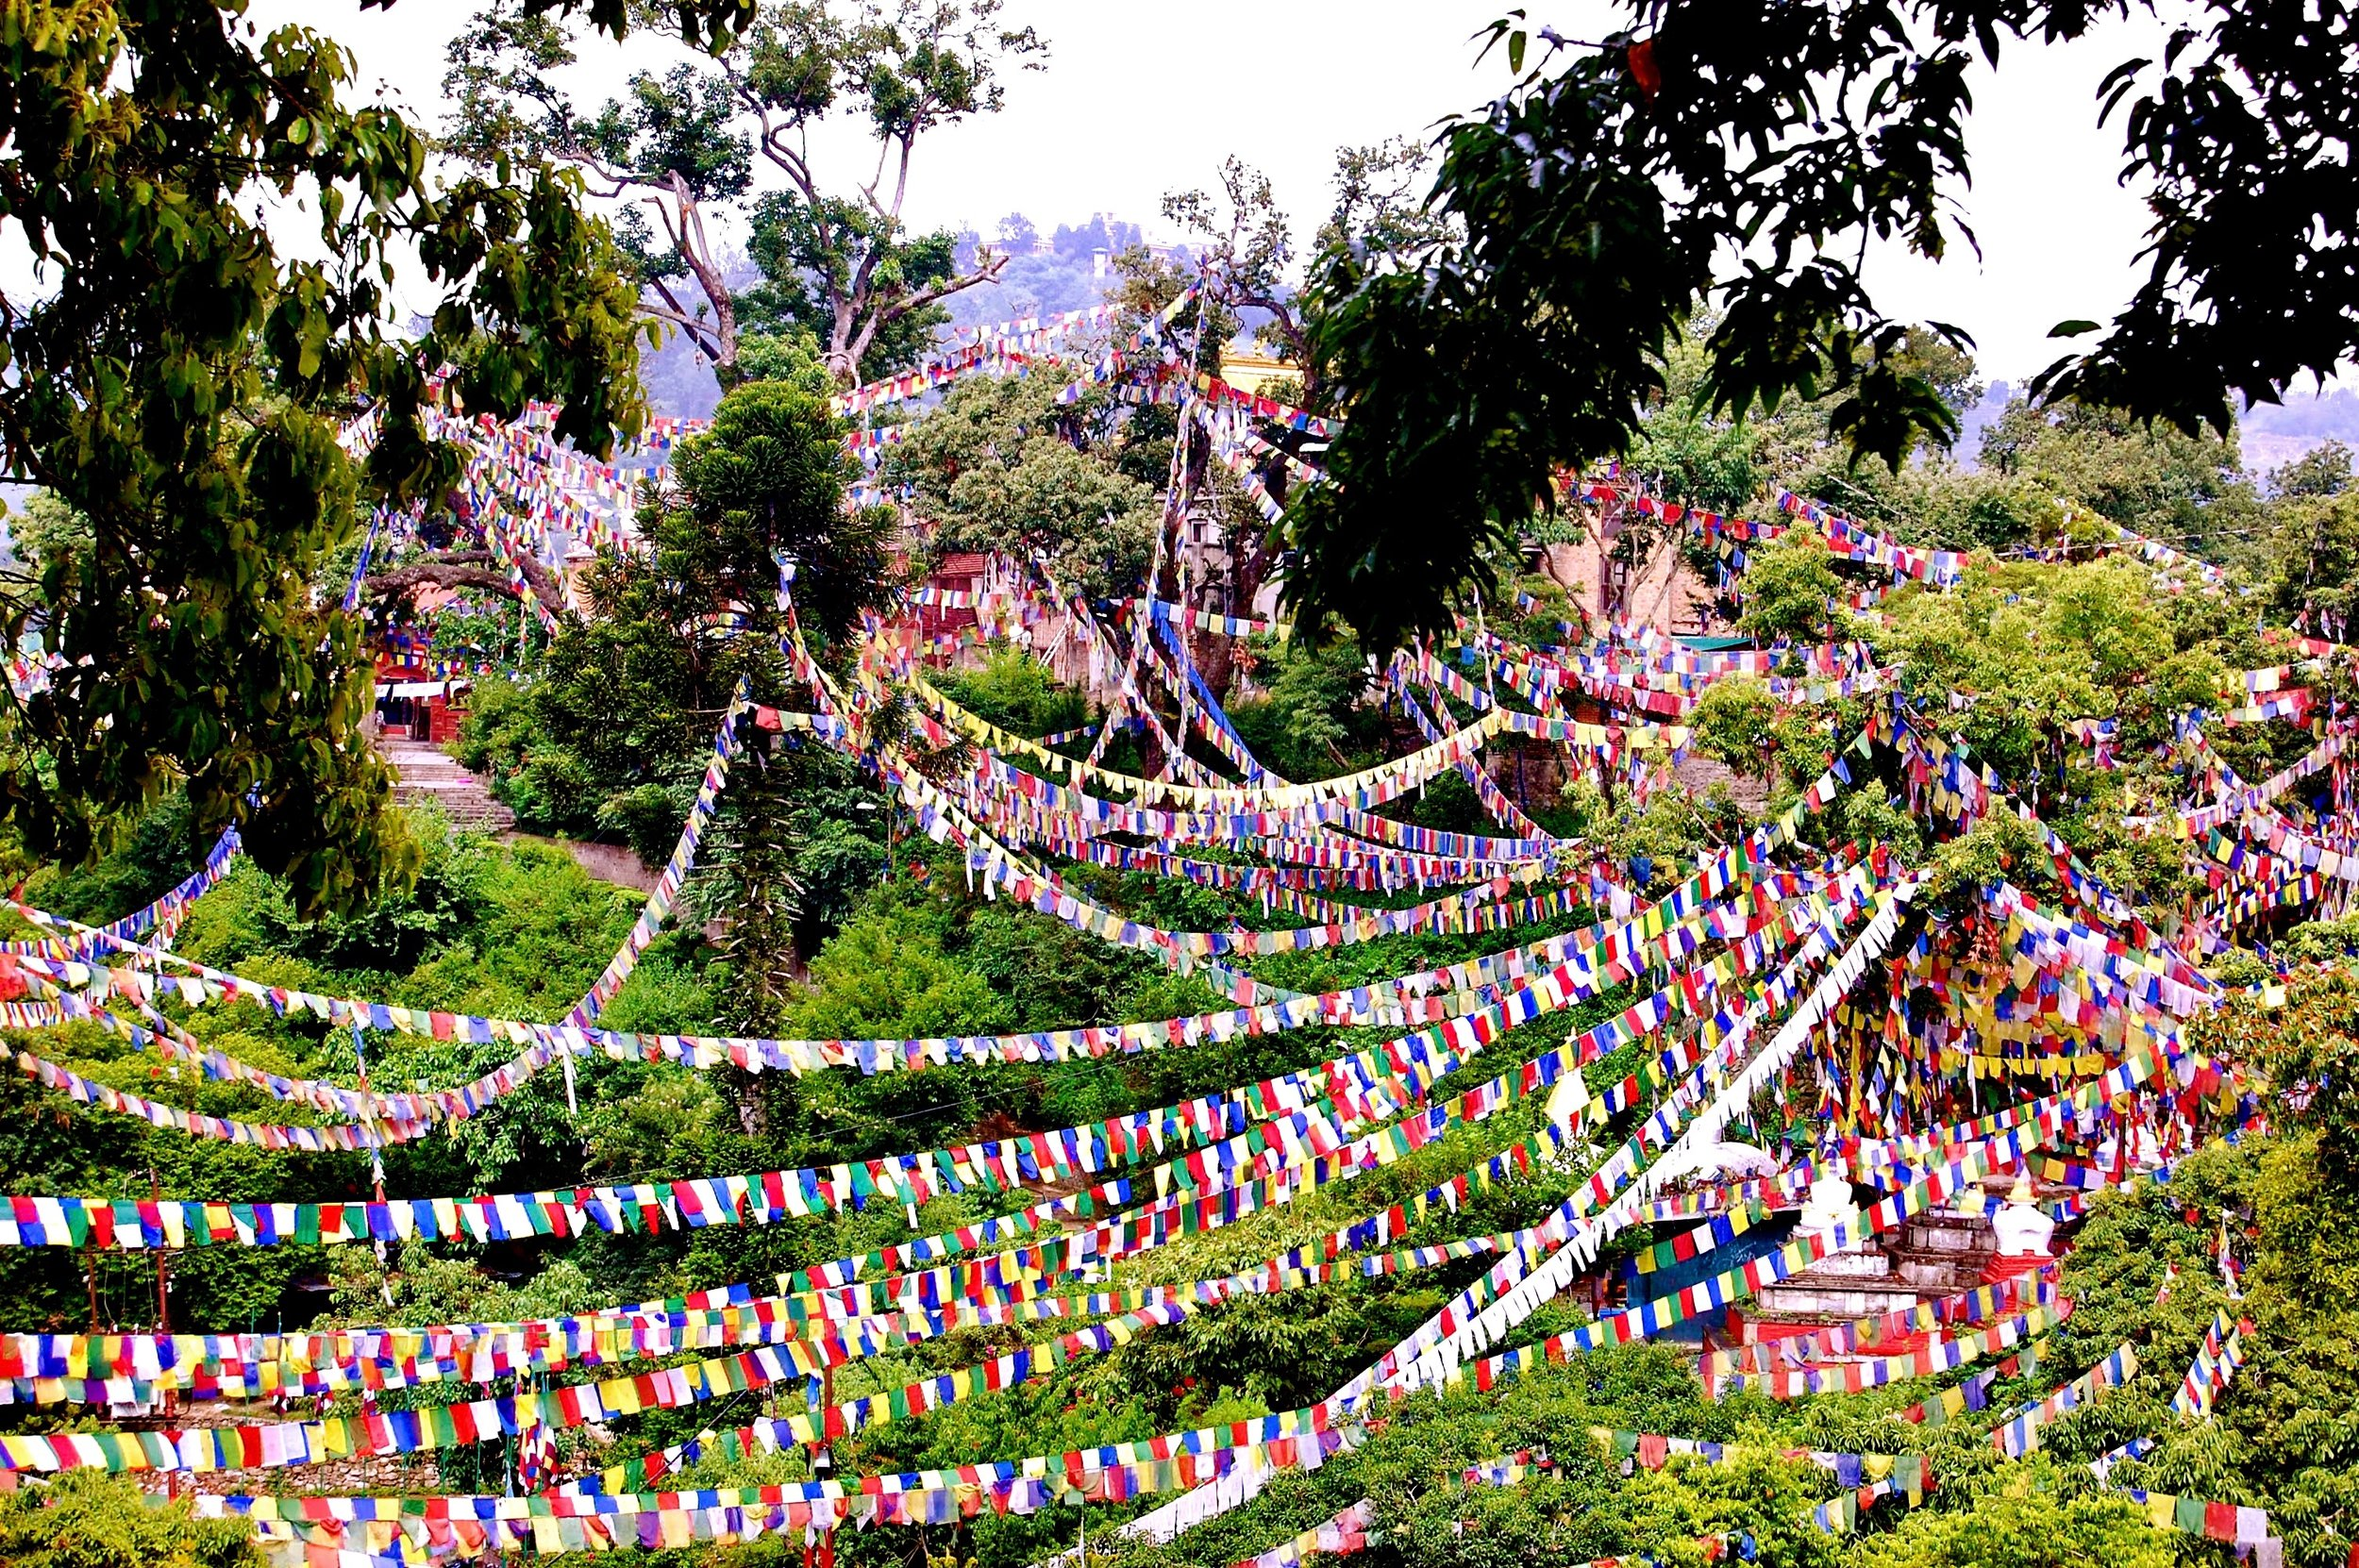 Prayer flags adorn the hills surrounding Swayambunath, also known as the Monkey Temple (Kathmandu, Nepal)